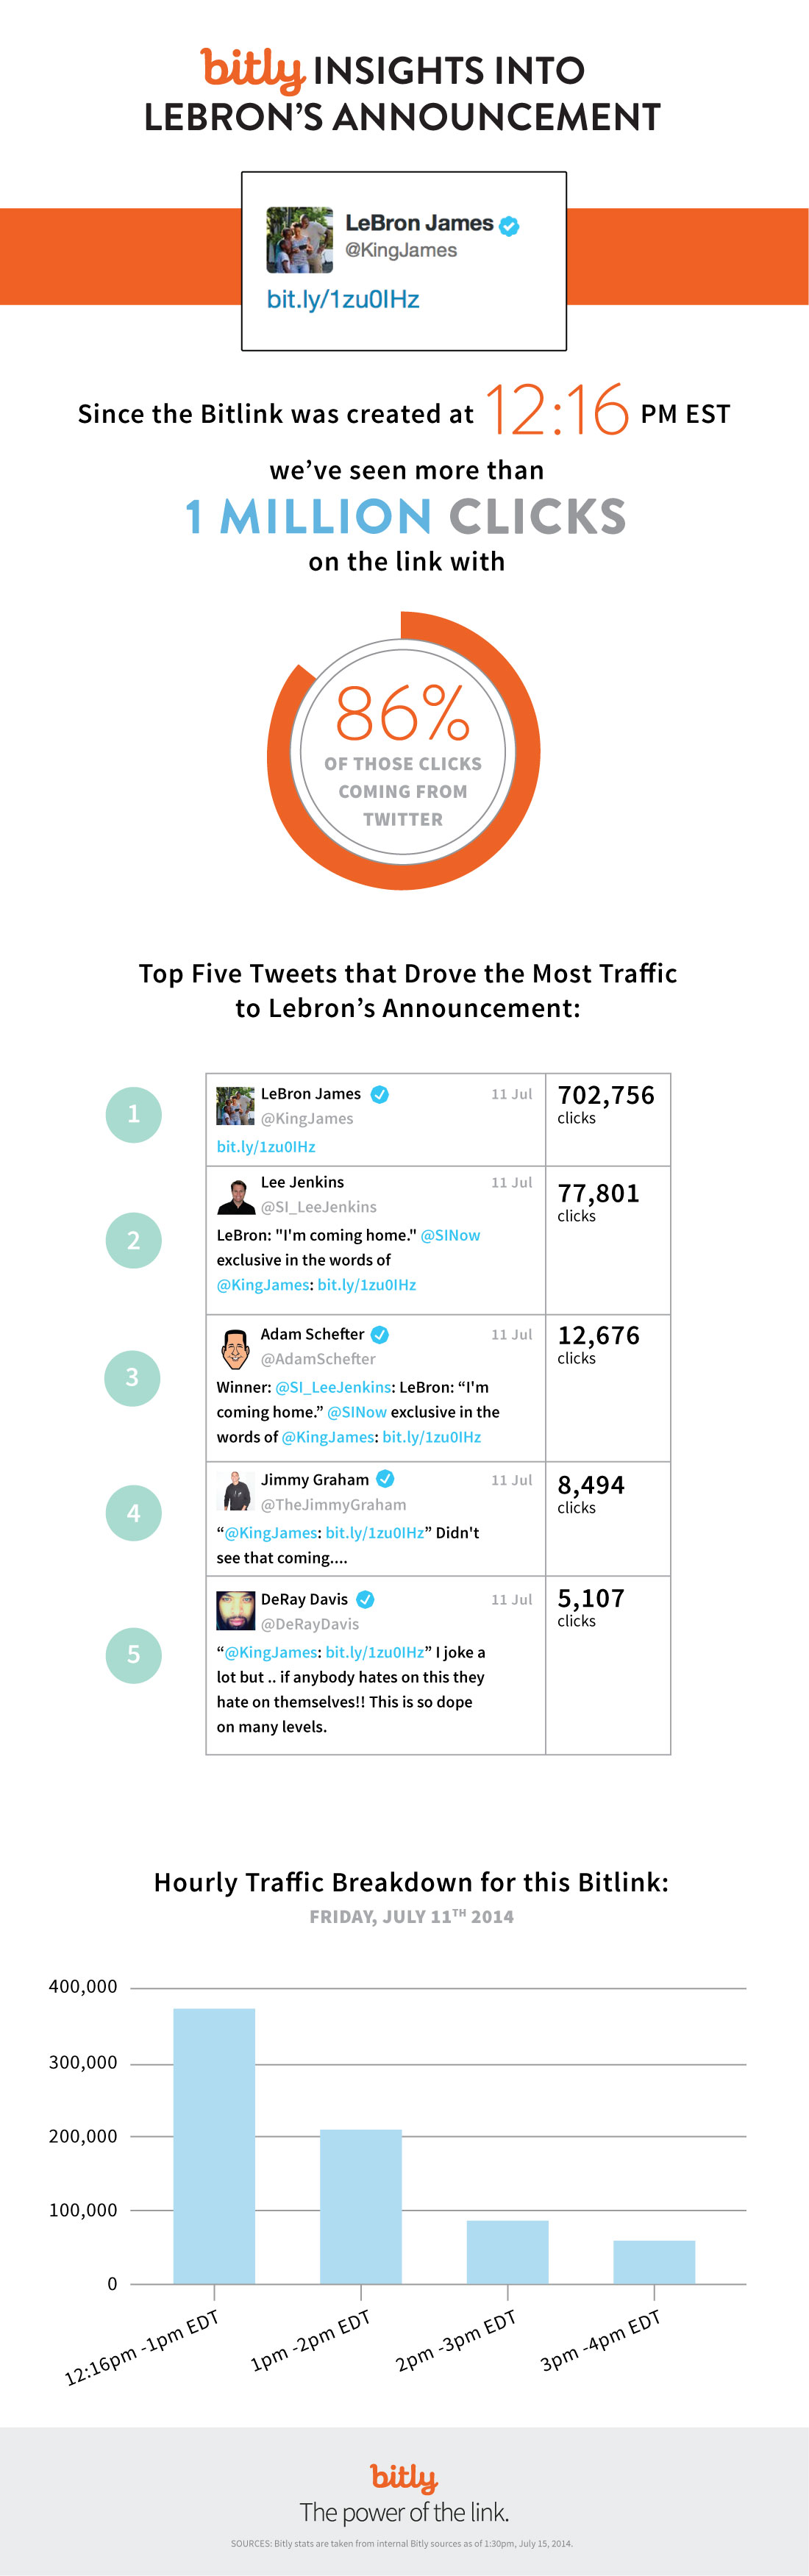 Infographic-Bitly-Insights-into-Lebron-James-Announcemnt